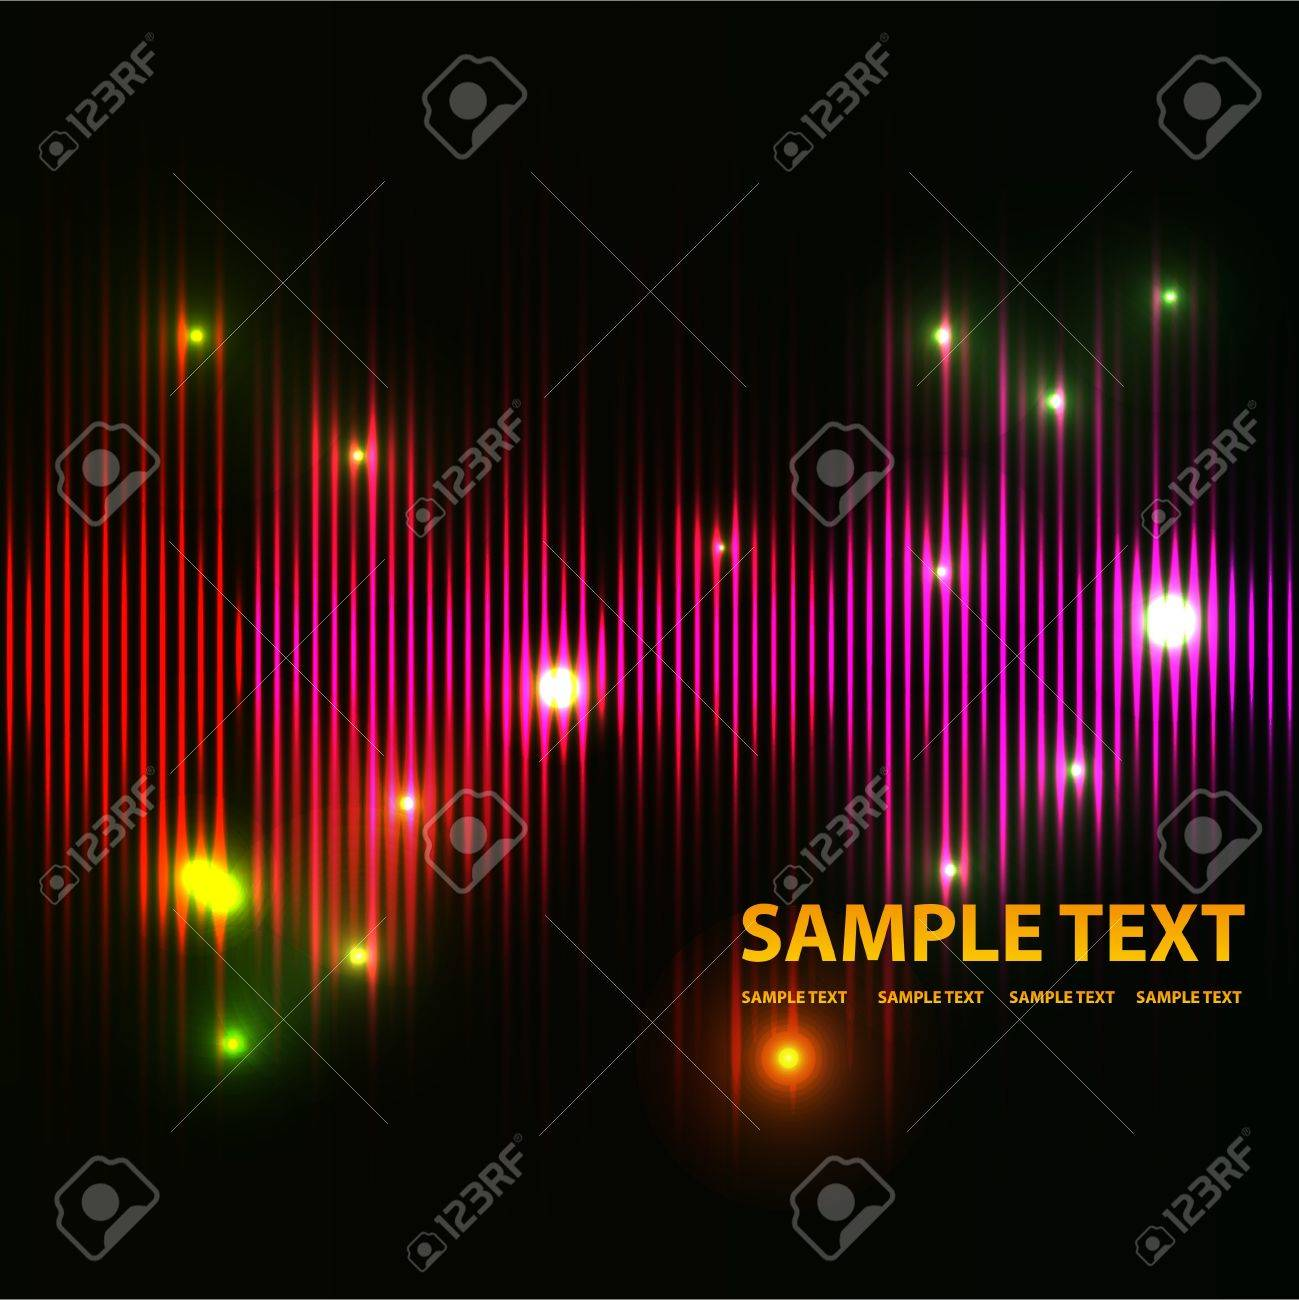 Abstract vector background. Stock Vector - 11933032